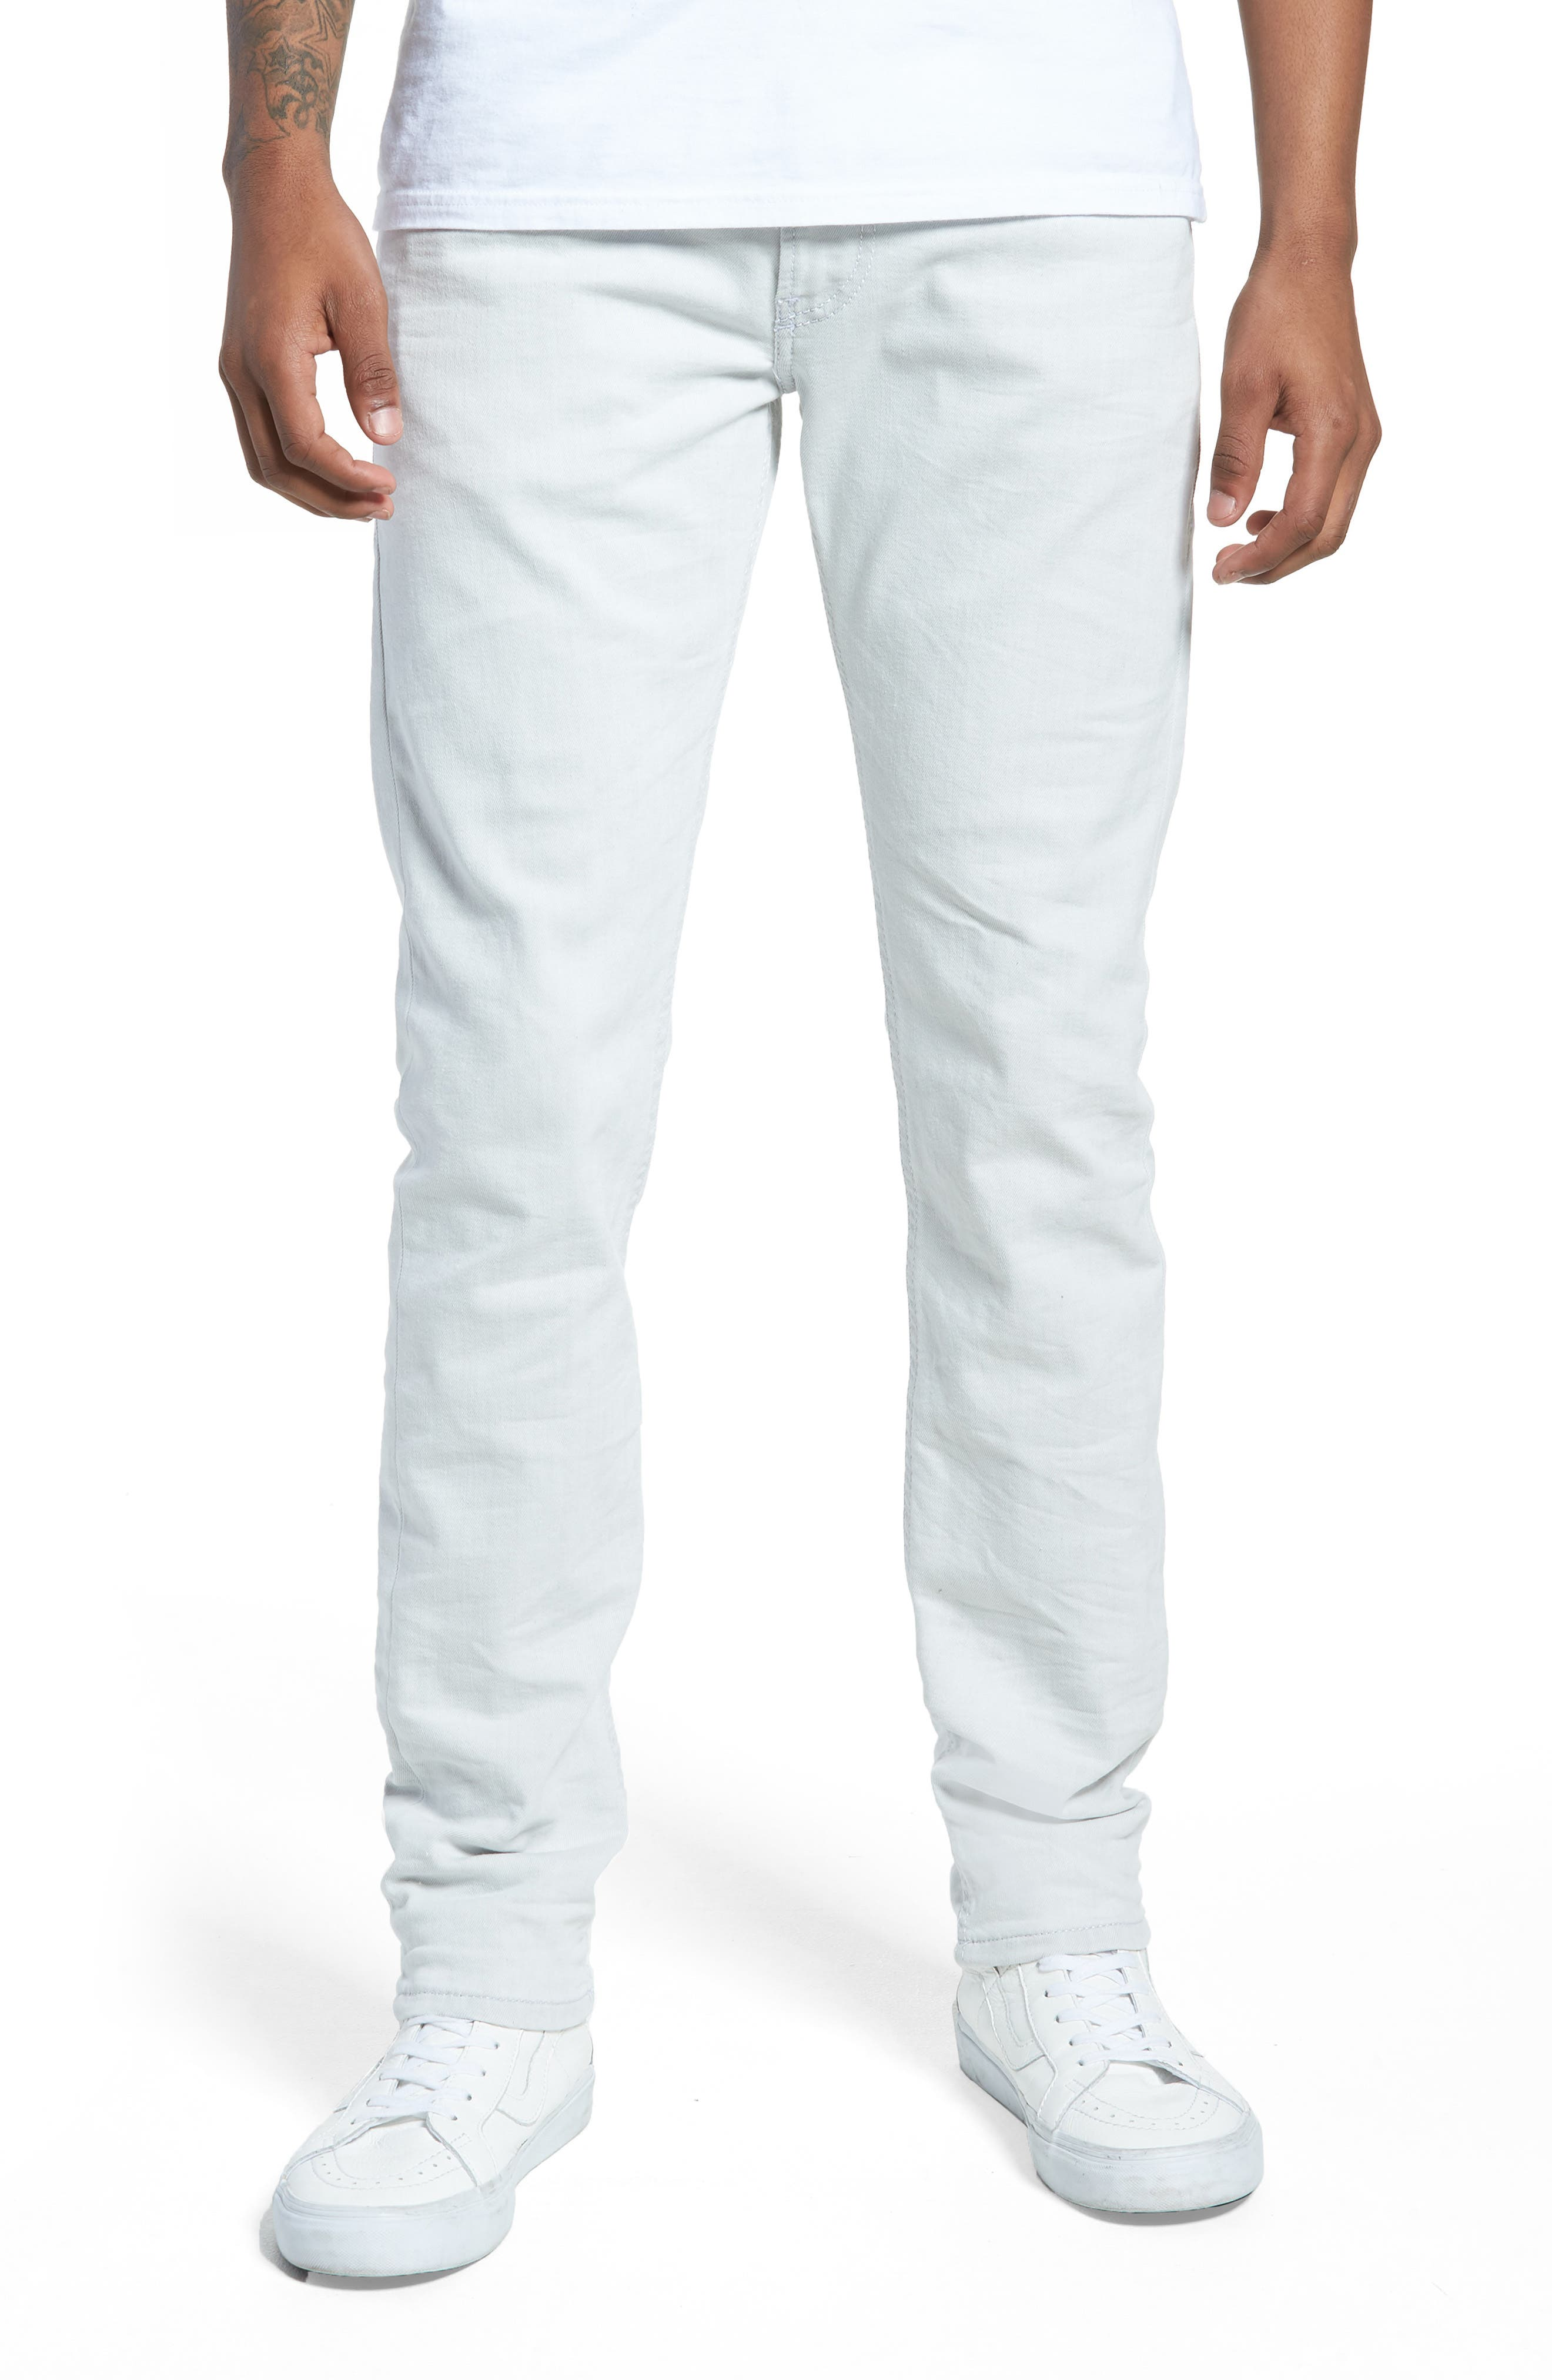 Thommer Slim Fit Jeans,                         Main,                         color, 0689F